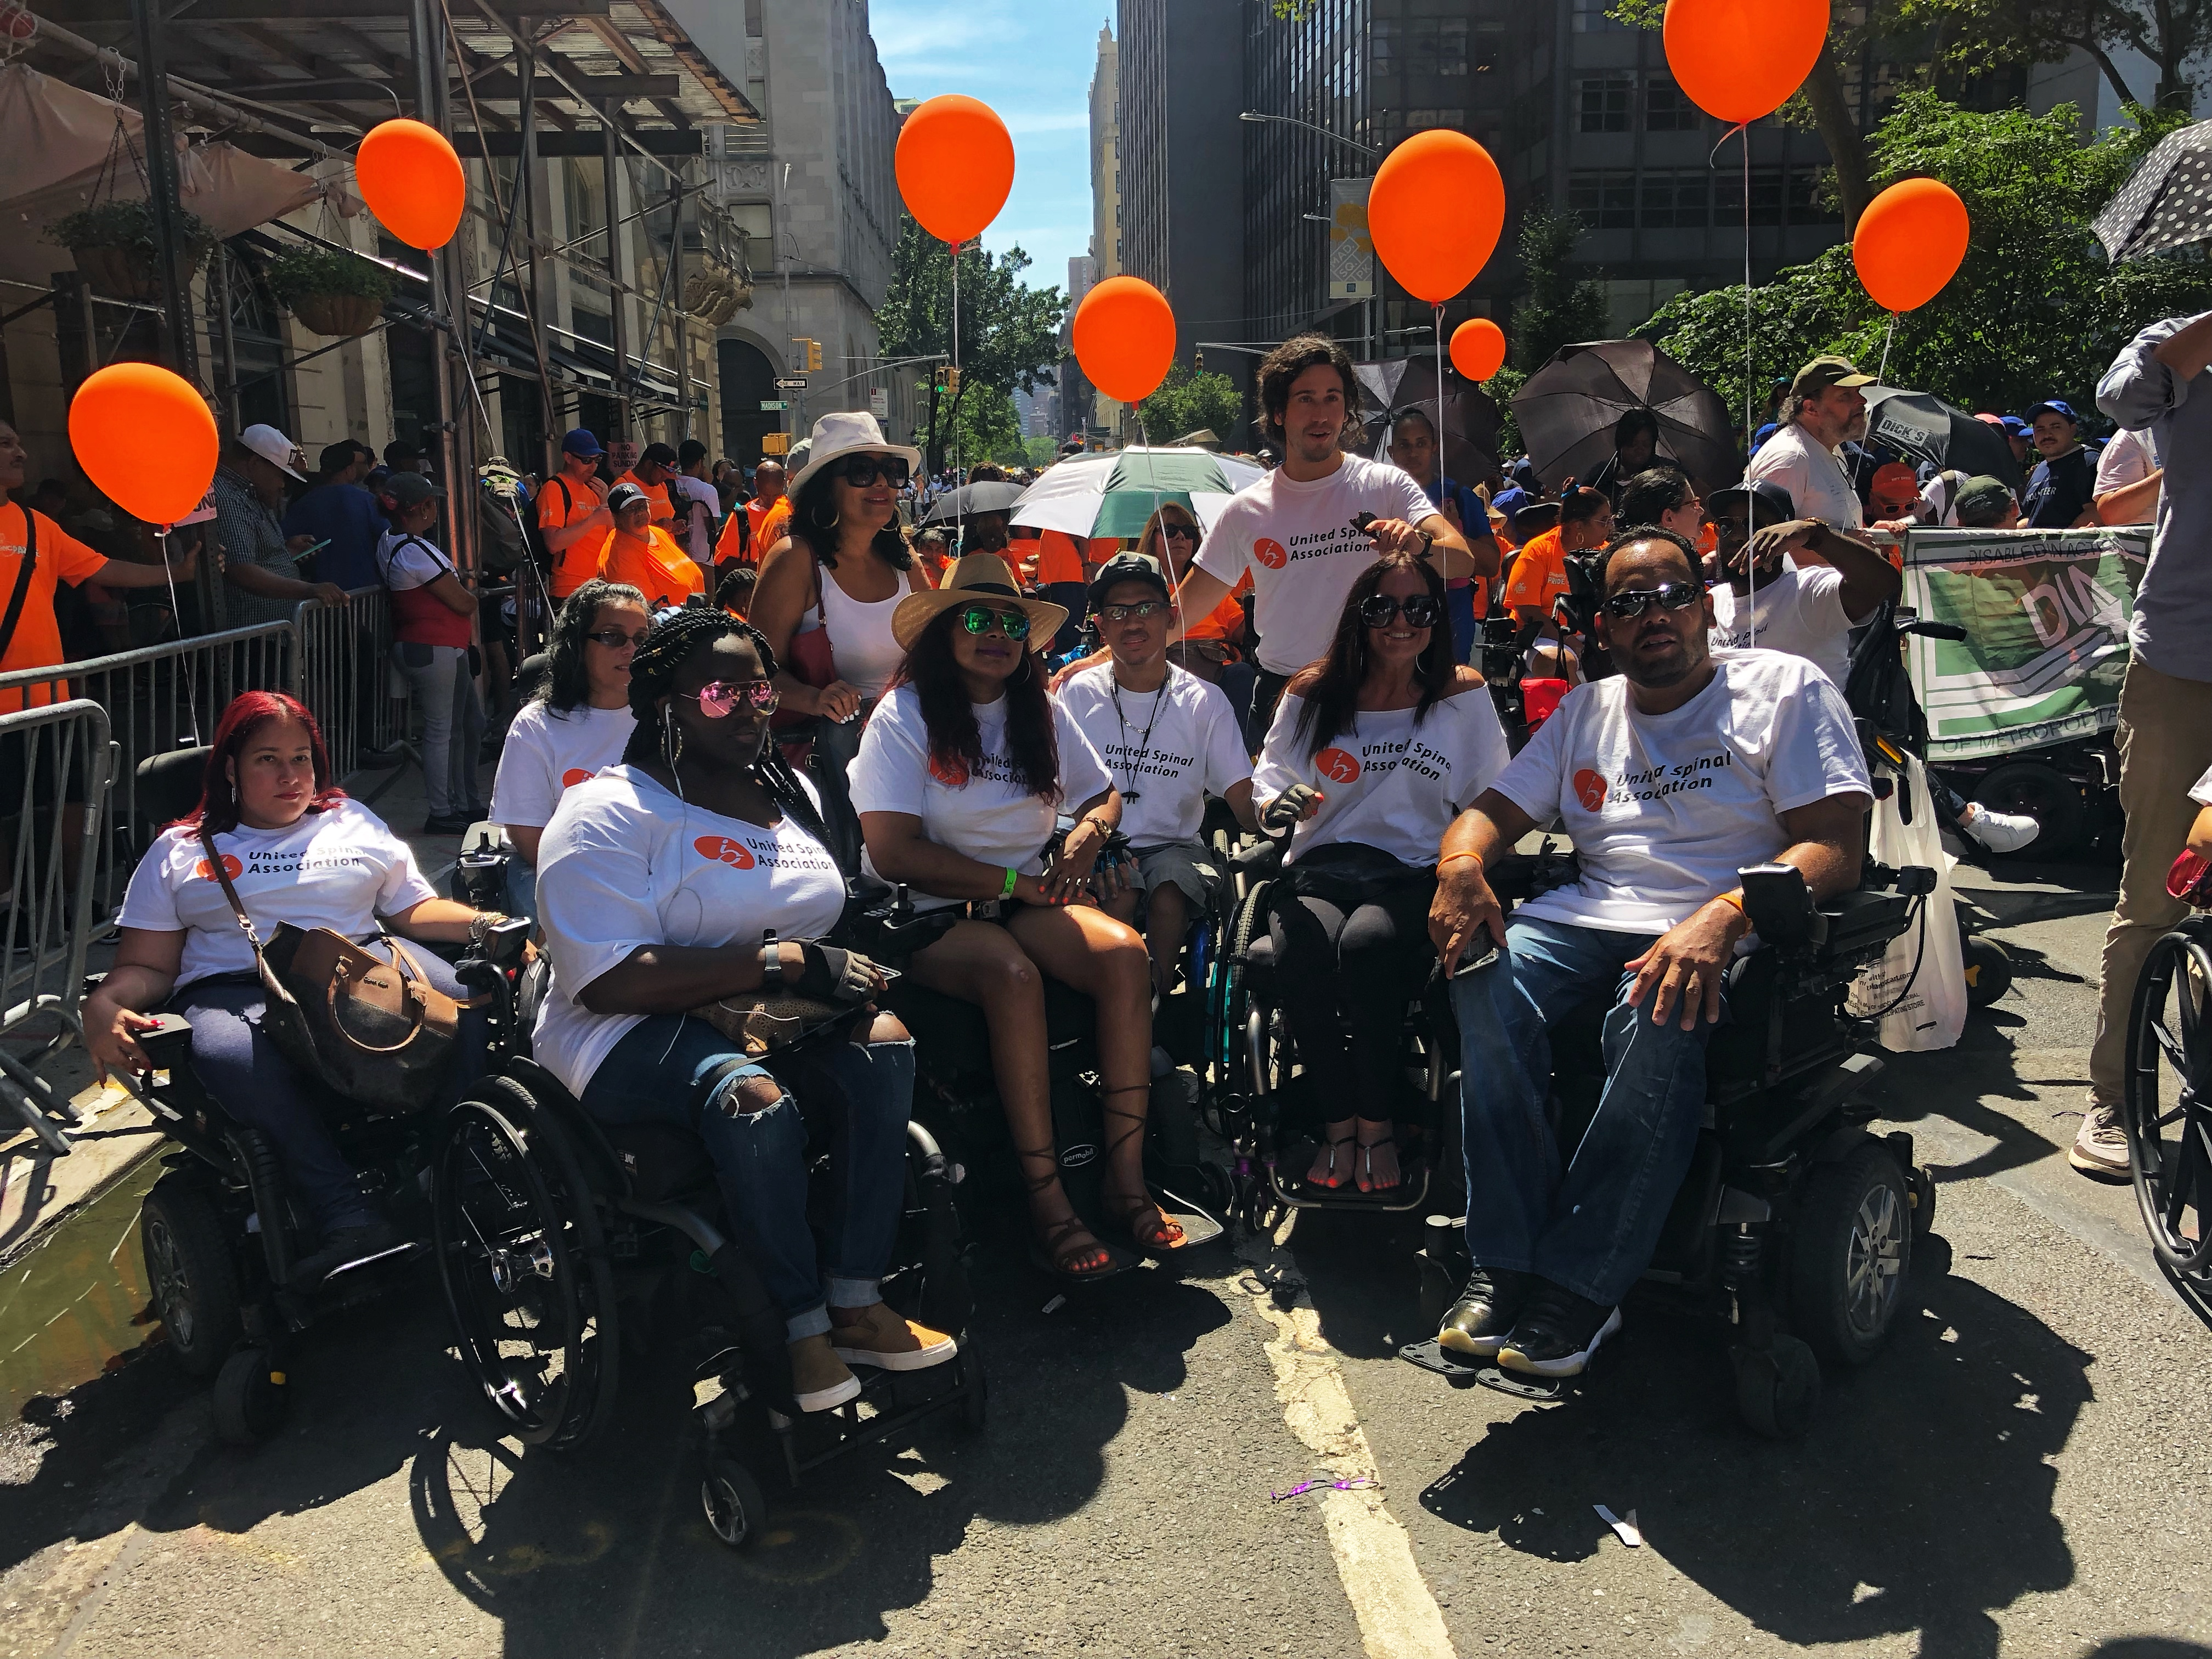 United Spinal volunteers at Disability Pride Parade in New York City